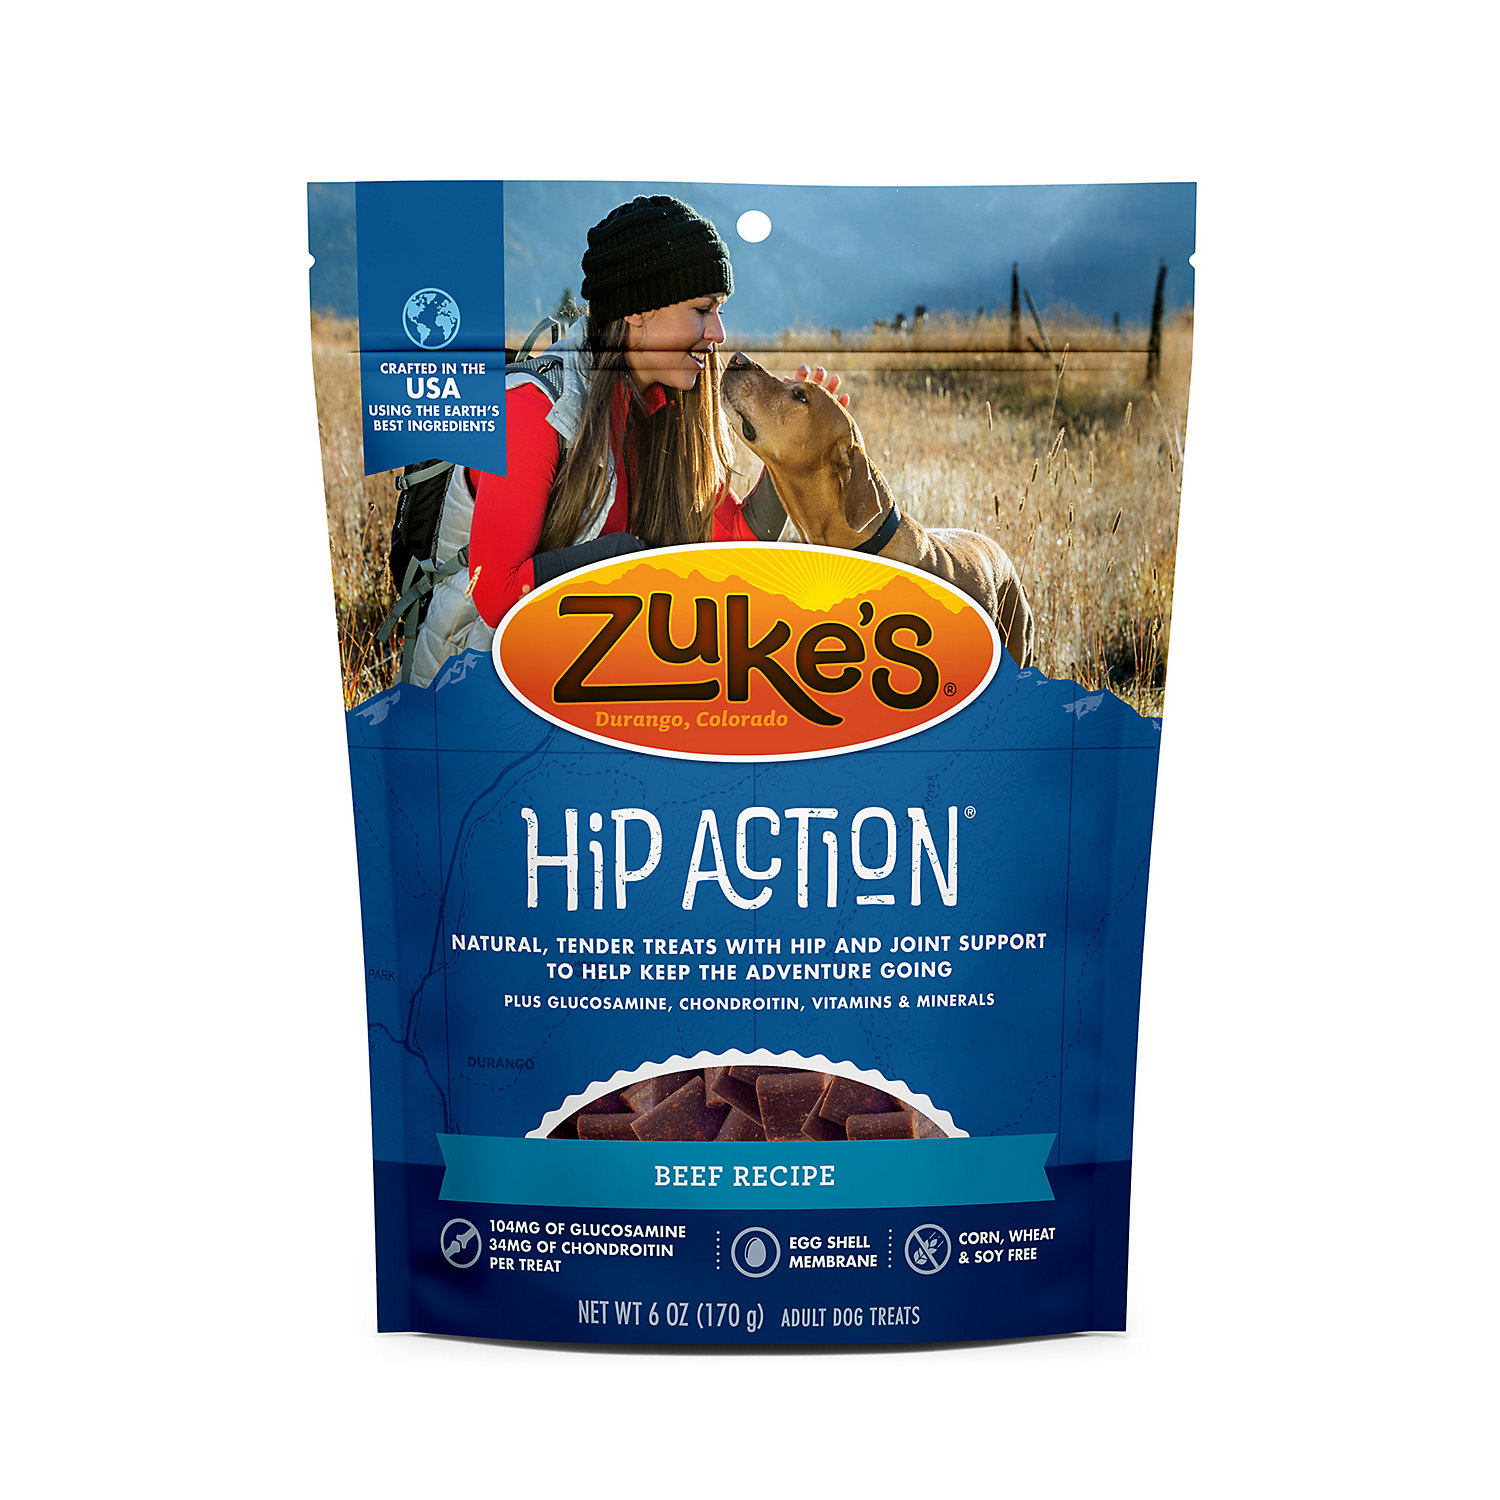 Zukes Hip Action Hip Joint Support Roasted Beef Dog Treats 6 Oz.